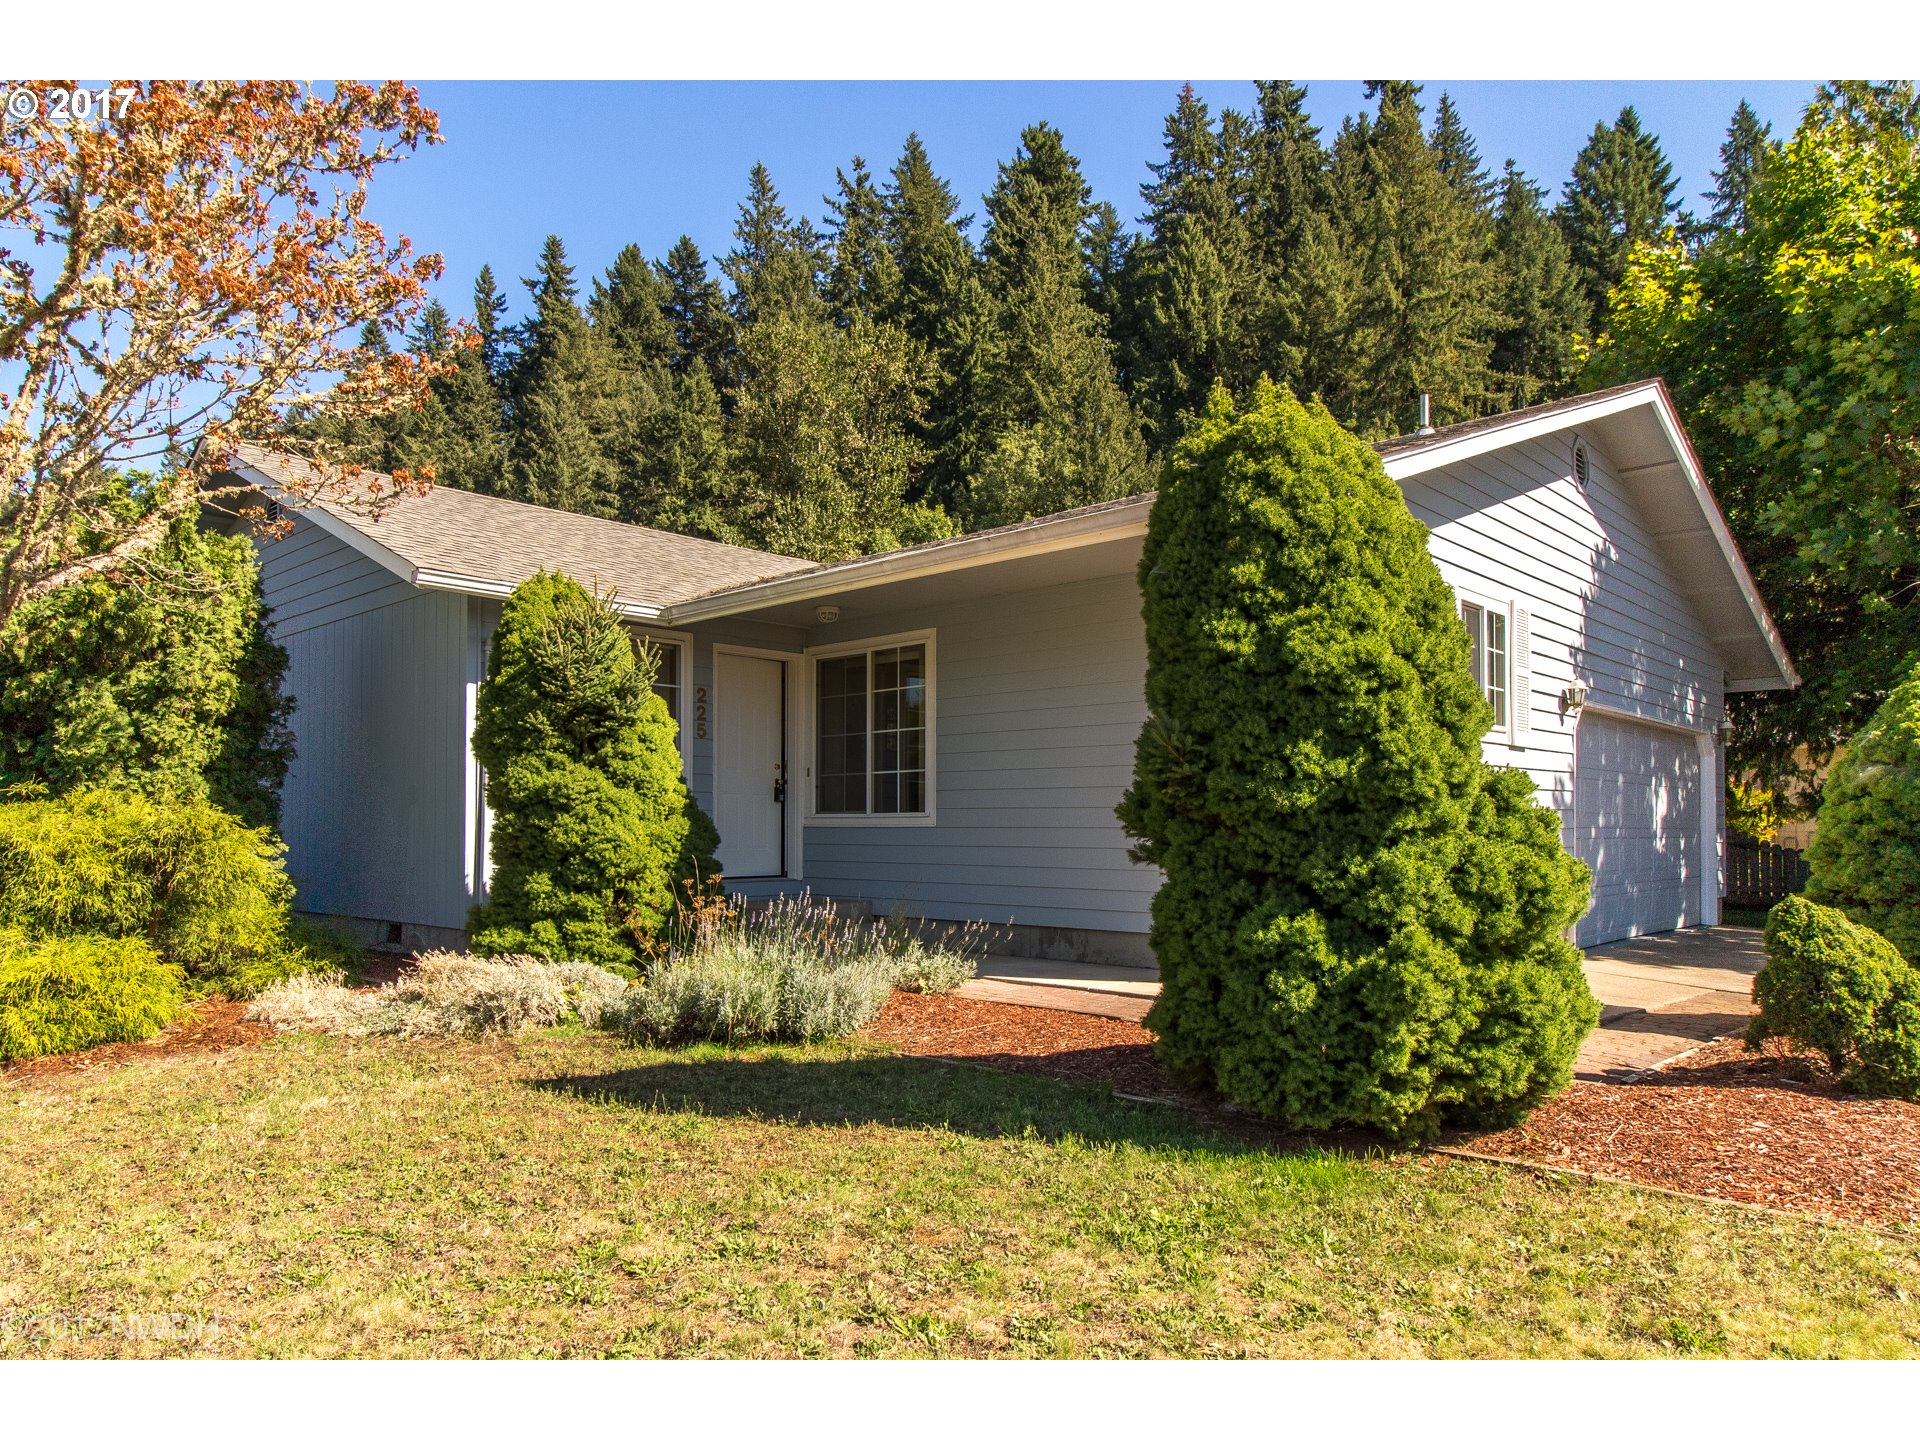 225 S 59TH ST, Springfield, OR 97478